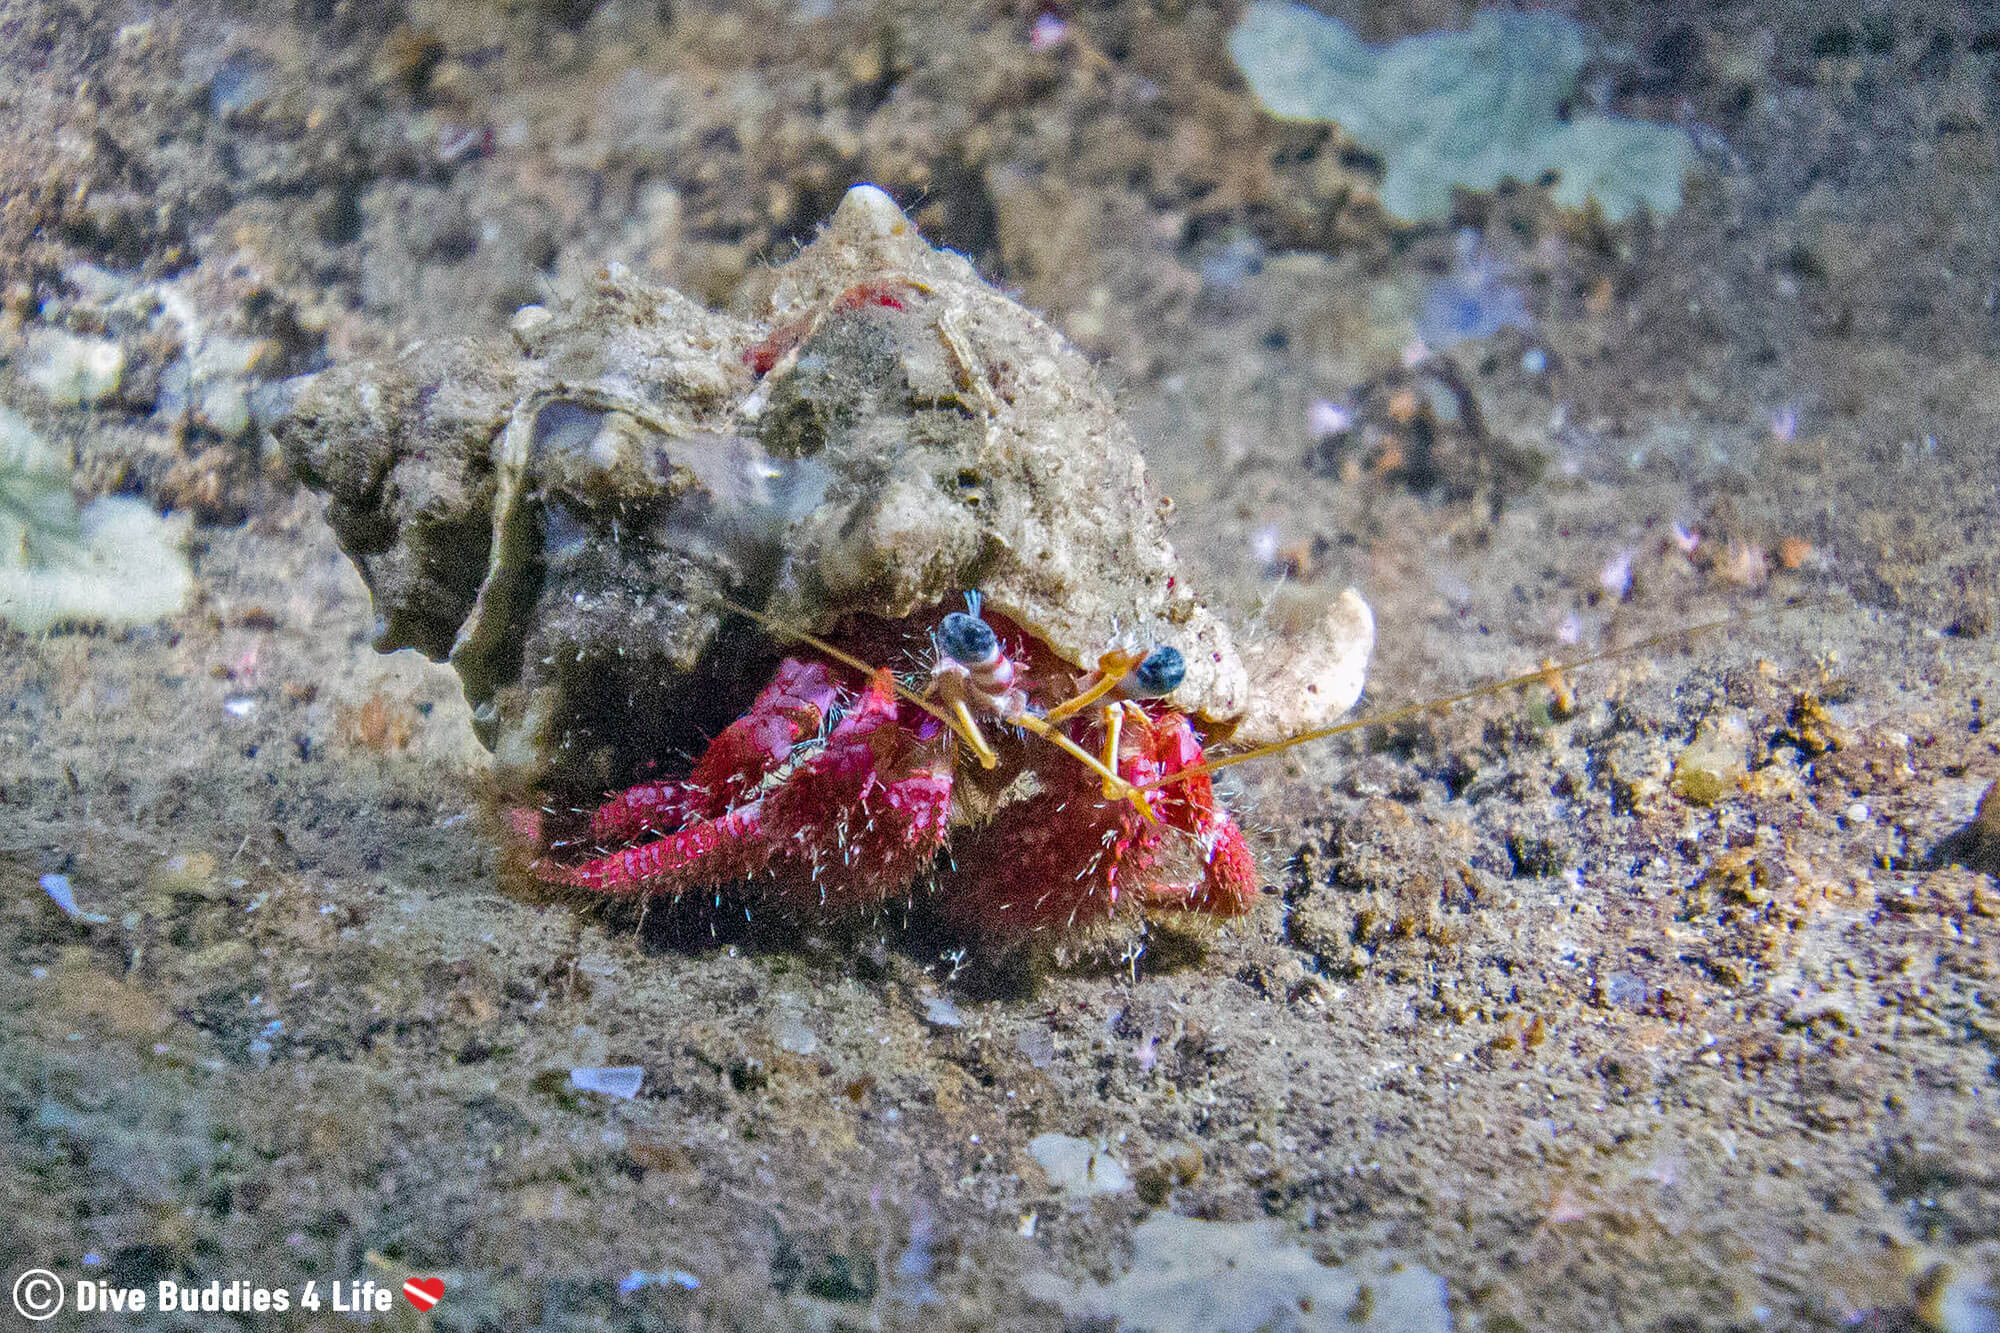 A Red Hermit Crab On The Bottom Of The Grotta Dell'Isca Mediterranean Sea Scuba Diving The Amalfi Coast, Italy, Europe